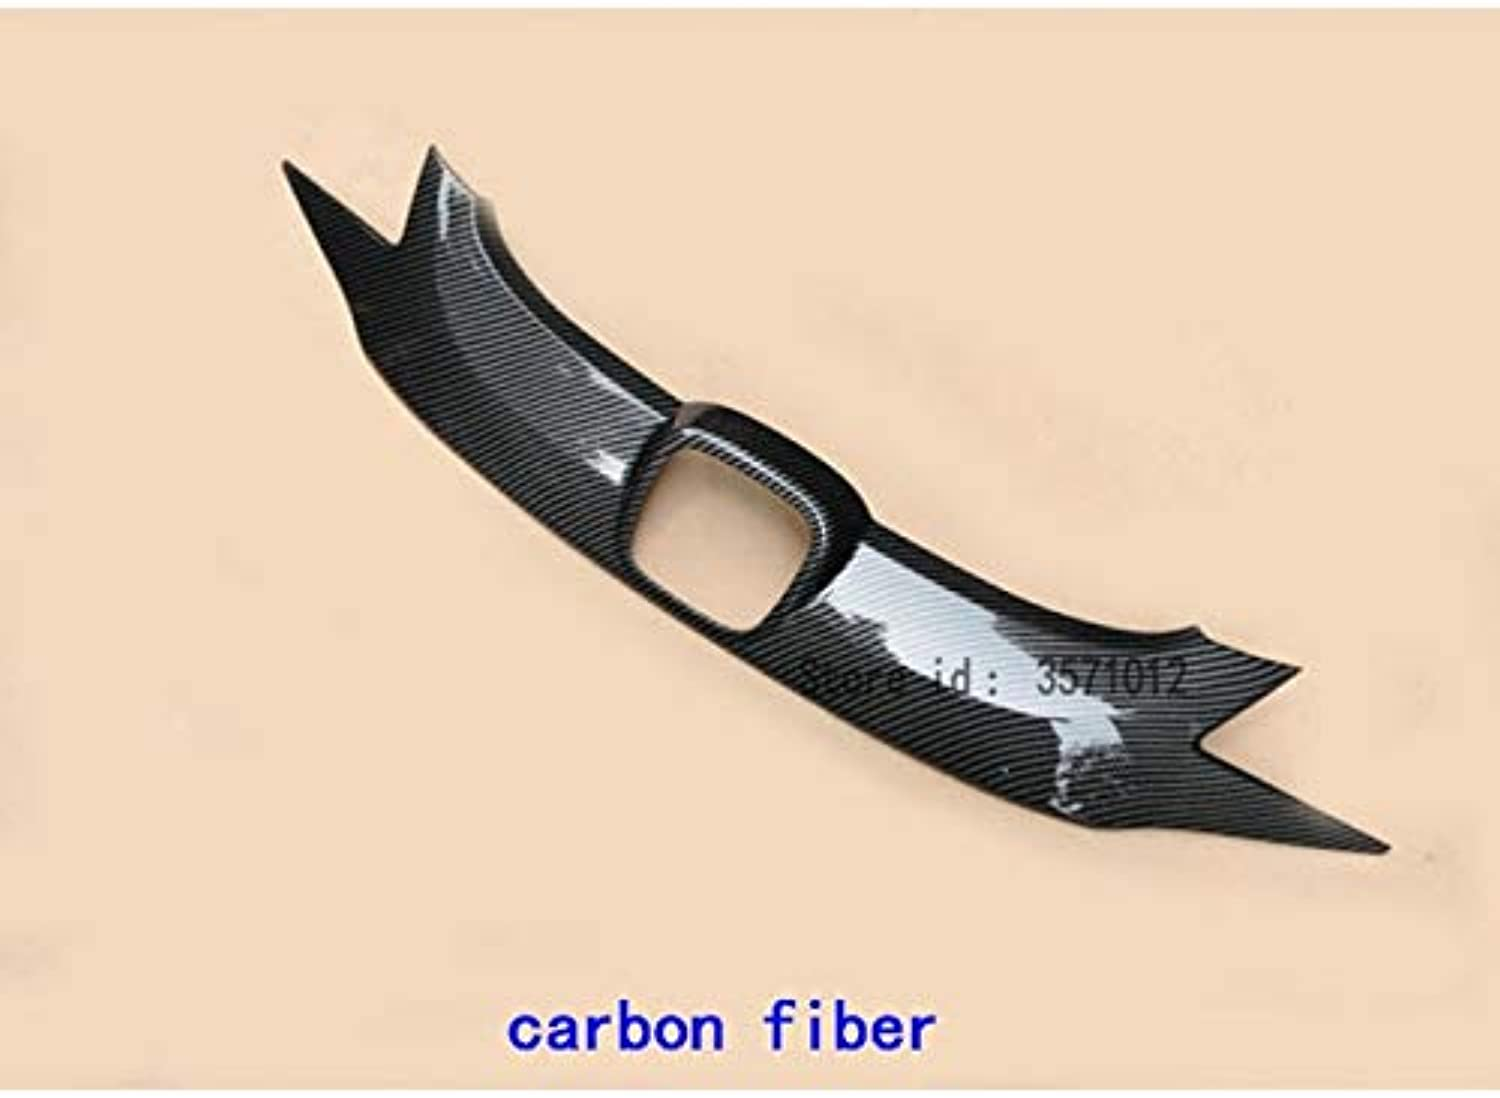 For Honda Fit Jazz 2014 2015 2016 2017 car Styling Body ABS